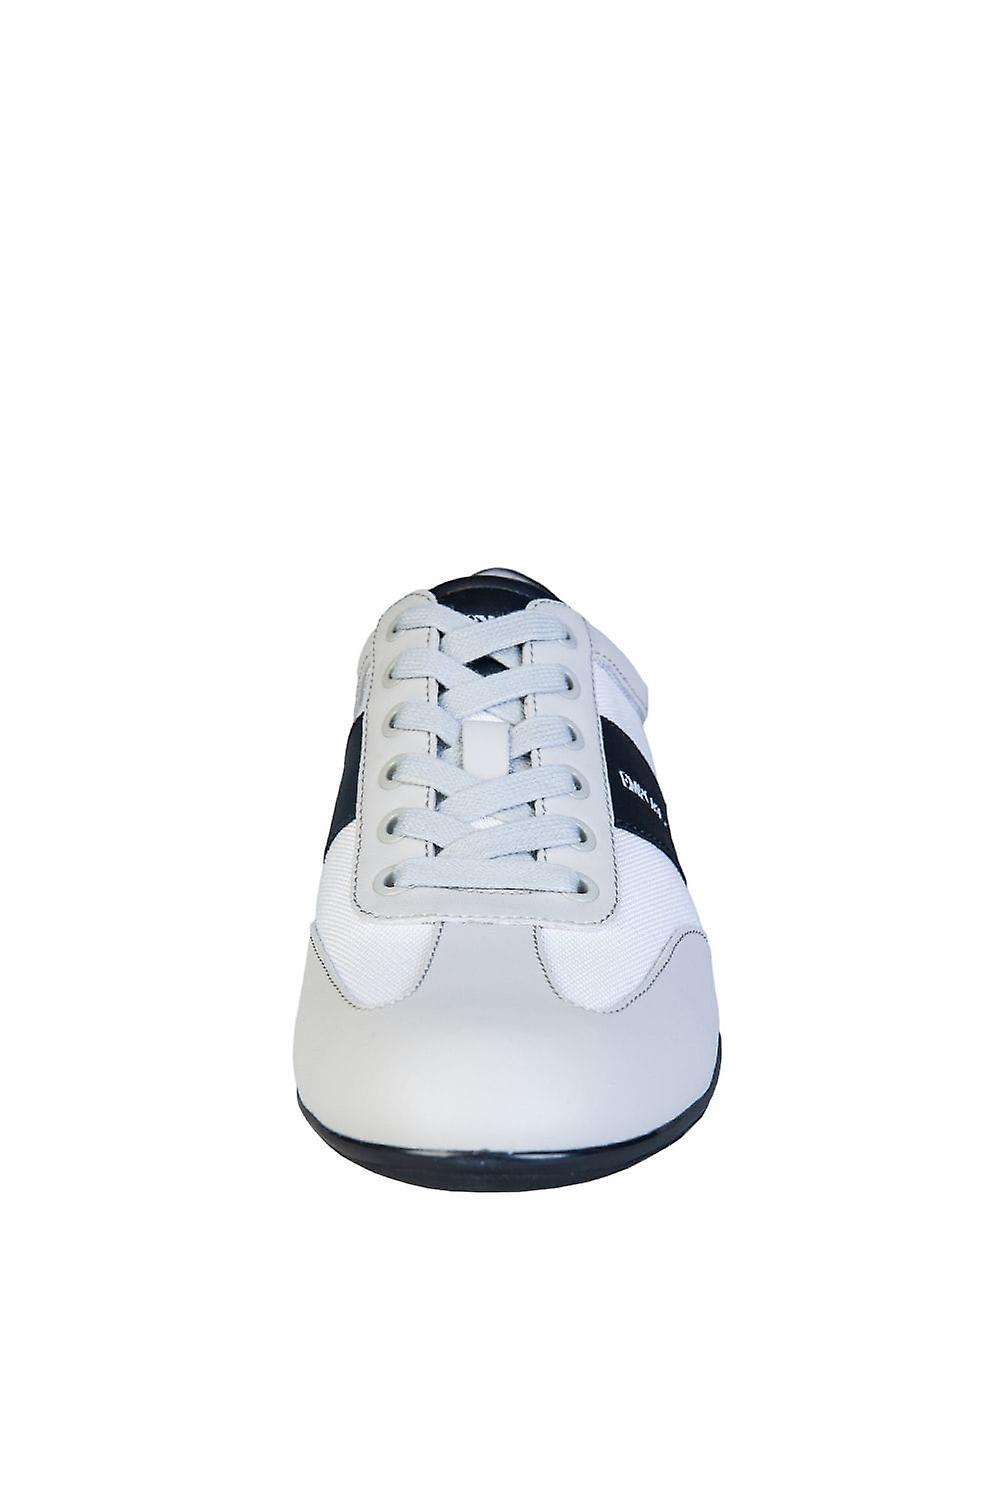 Emporio Armani Lace-up Trainers X4C475 XL473